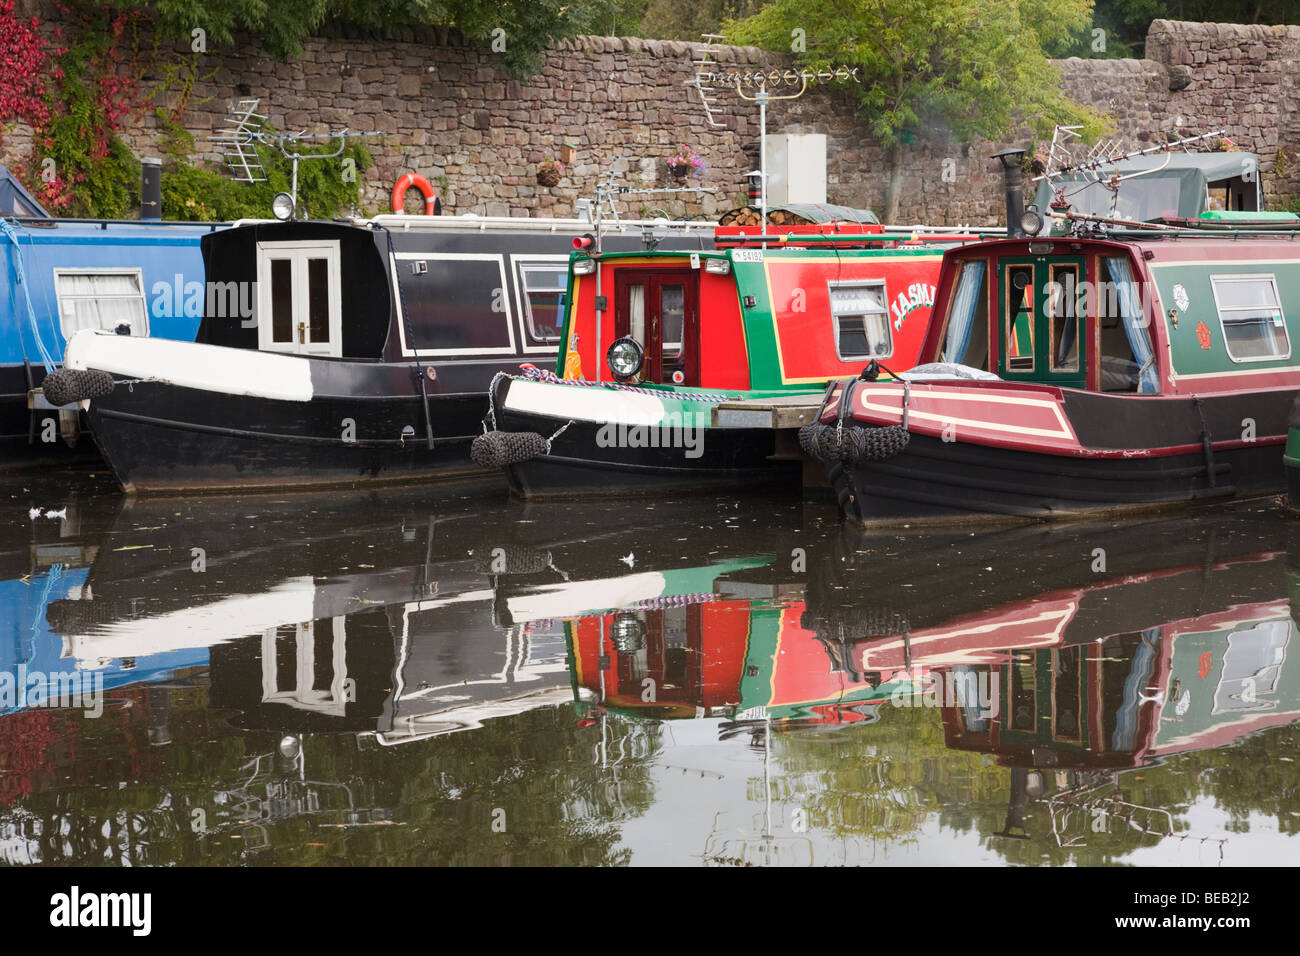 Galgate, Lancashire, England, UK, Europe. Moored narrowboats reflected in the water of the Lancaster canal basin. - Stock Image